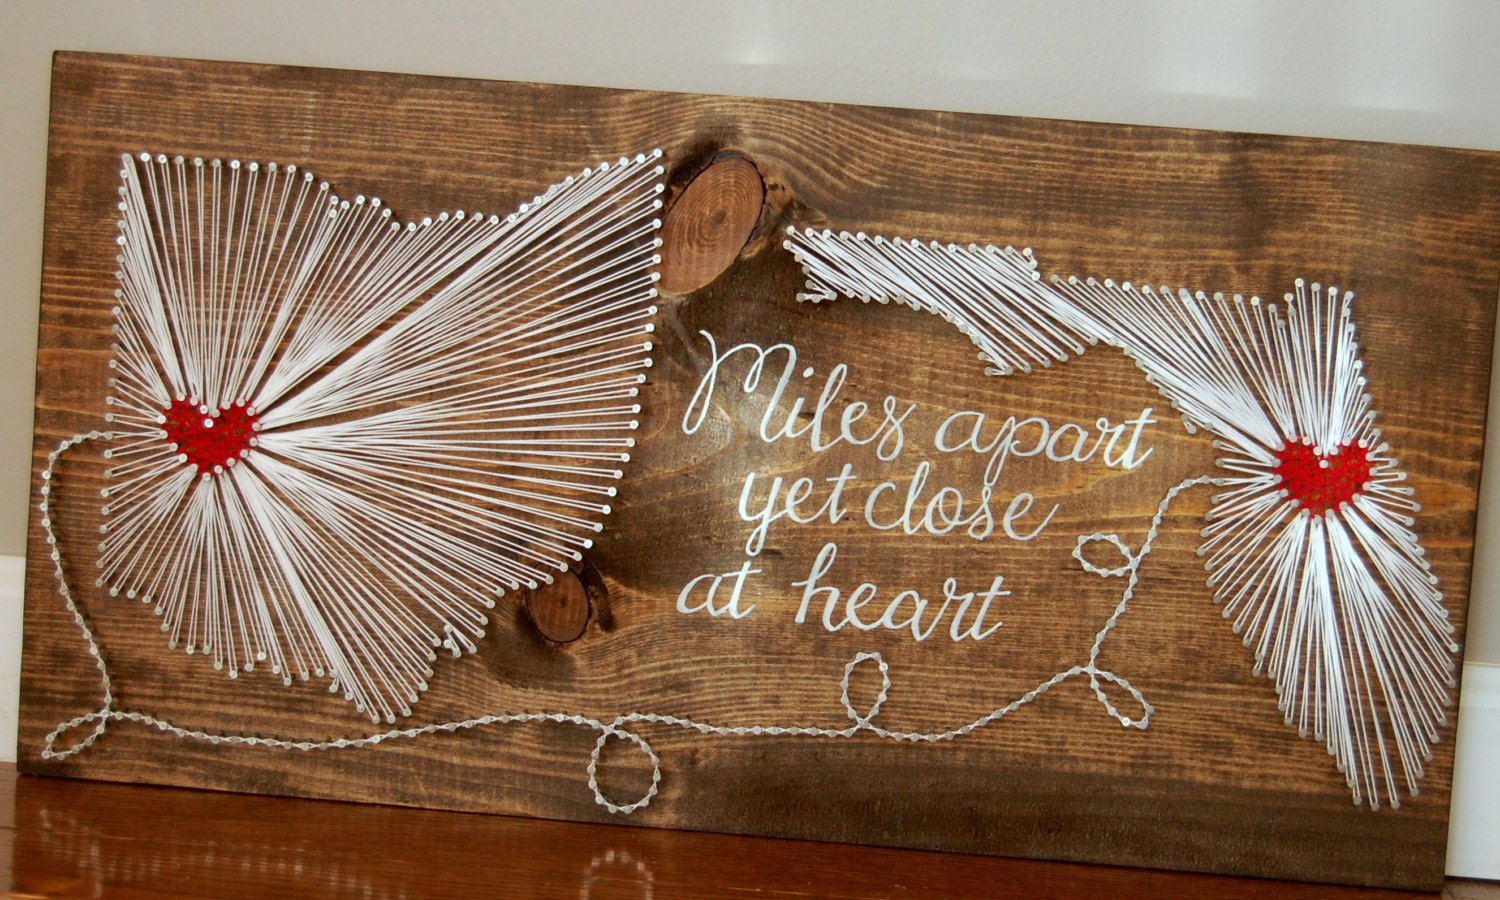 How To Do String Art Two State String Art Etsy State String Art Vanilla Vodka And Love